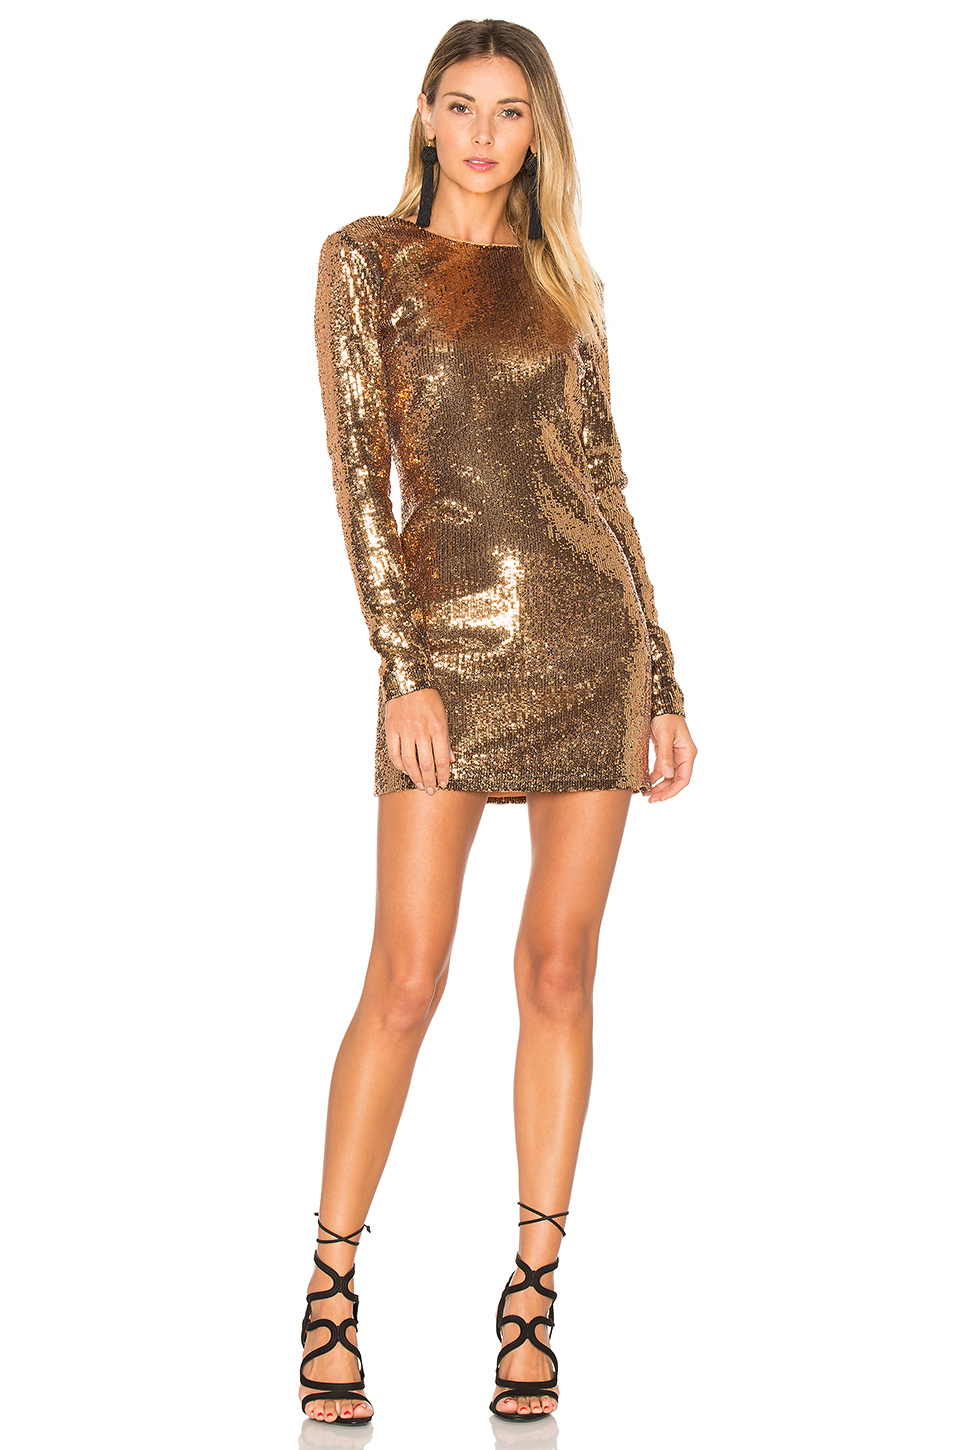 ale by alessandra x Julinha Dress in Bronze